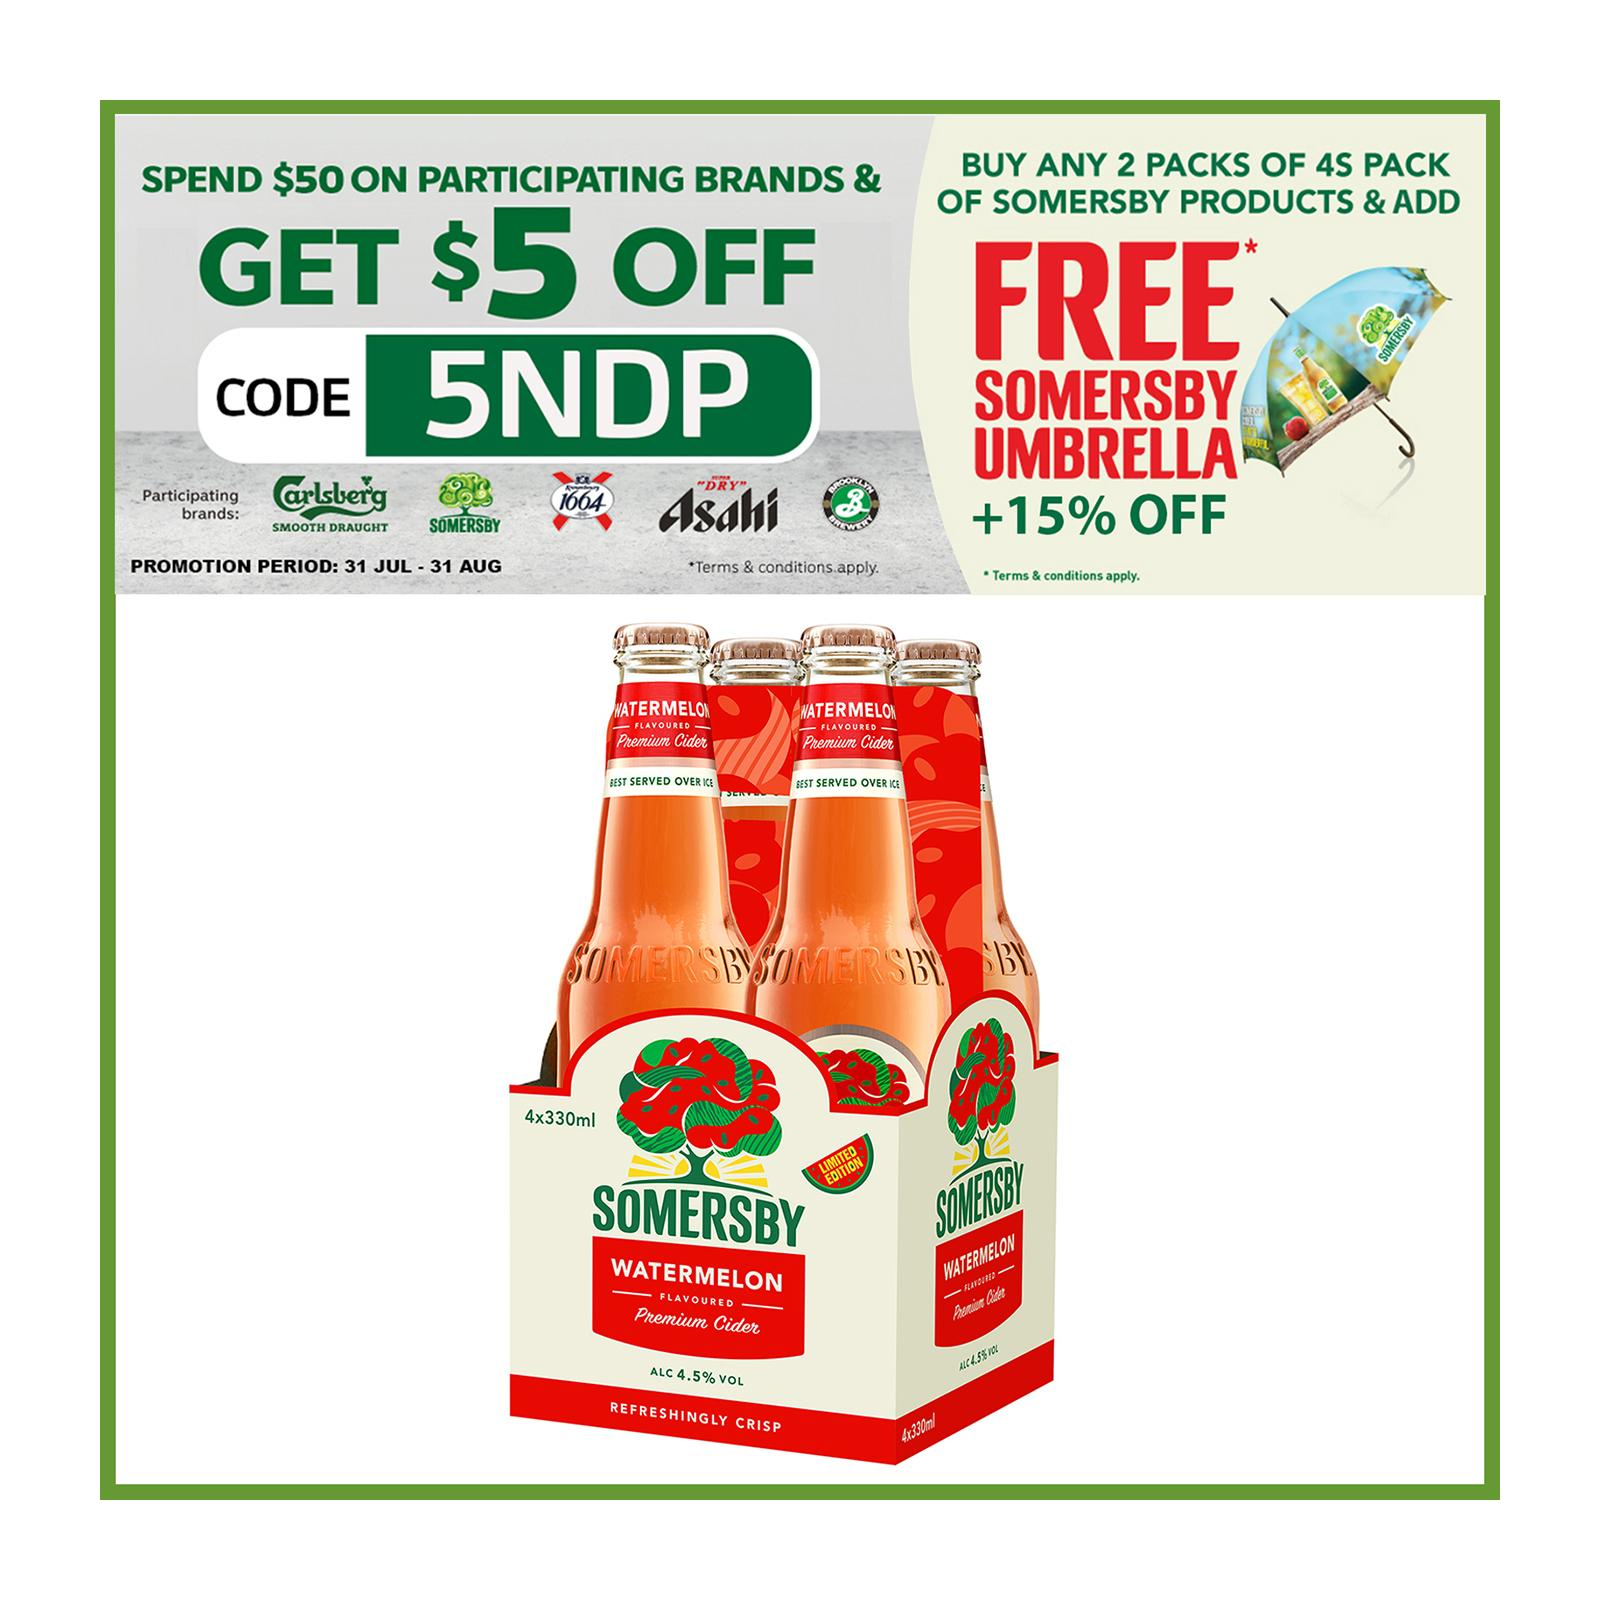 Somersby Watermelon Cider Bottles 330ml (Pack of 4)